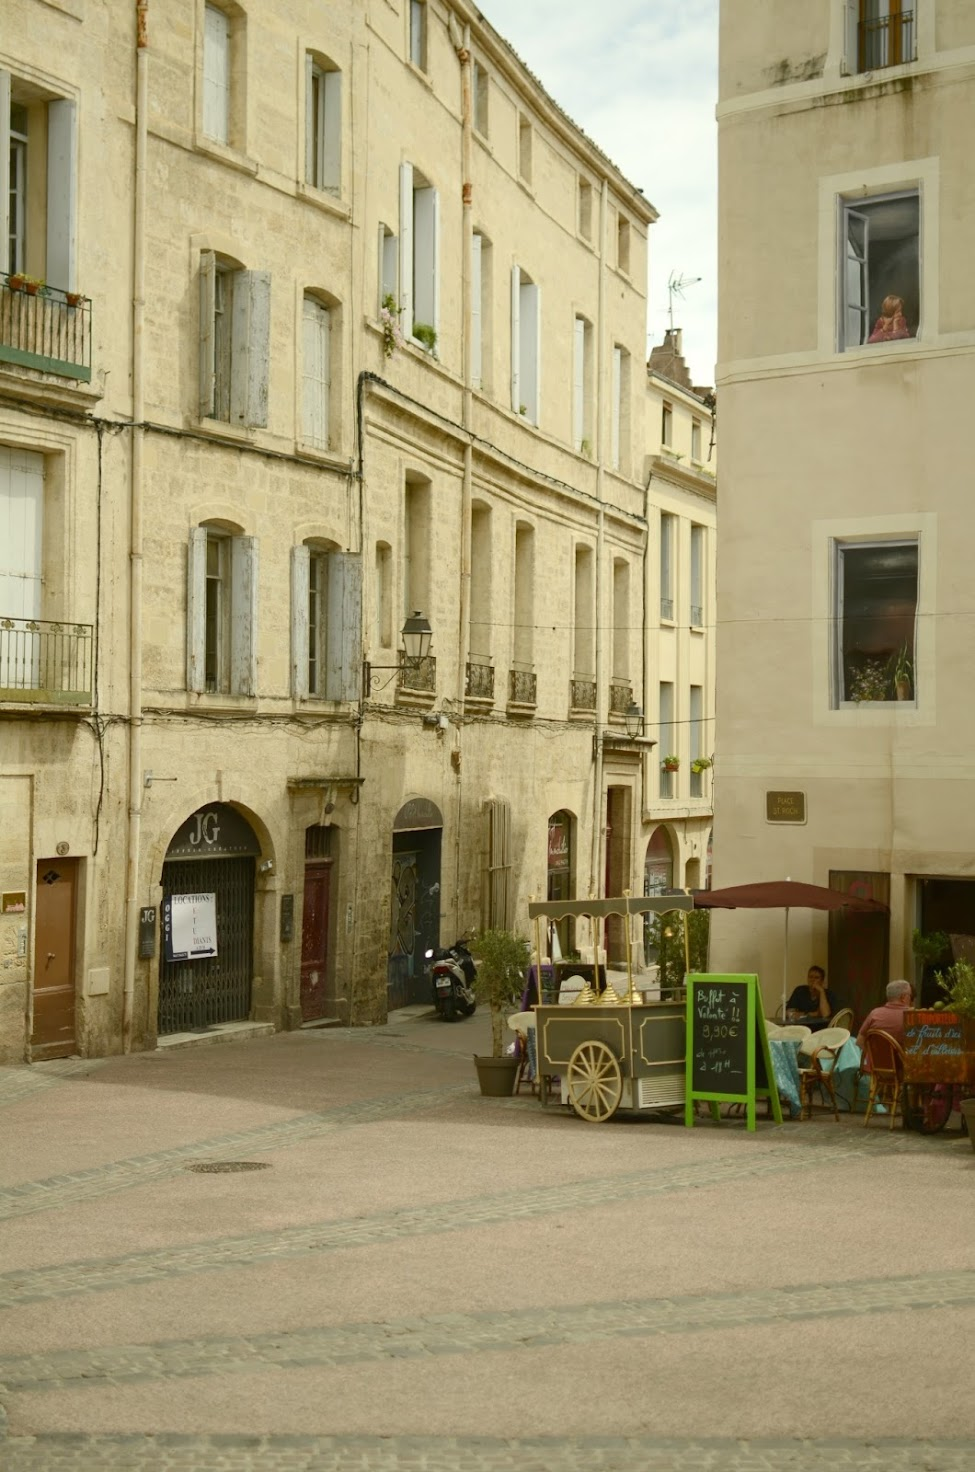 a street, architectural details in montpellier france